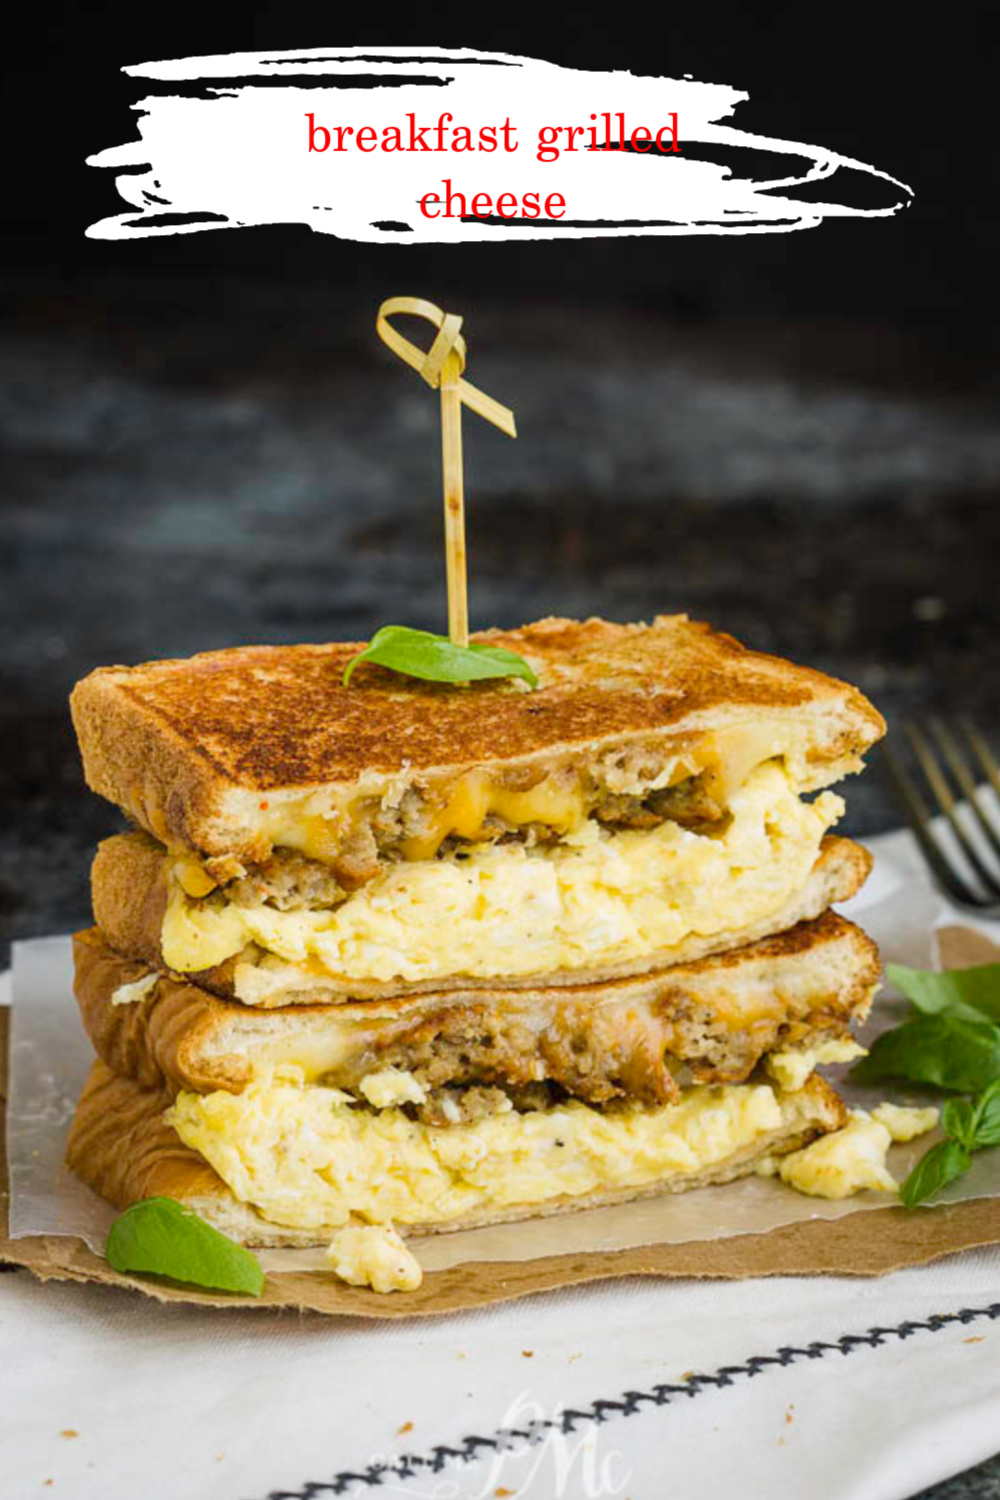 A savory, indulgent sandwich, Breakfast Grilled Cheese Recipe with soft scrambled eggs and sausage, will have you looking forward to breakfast. #breakfast #eggs #scrambledeggs #sauasage #grilledcheese #recipe